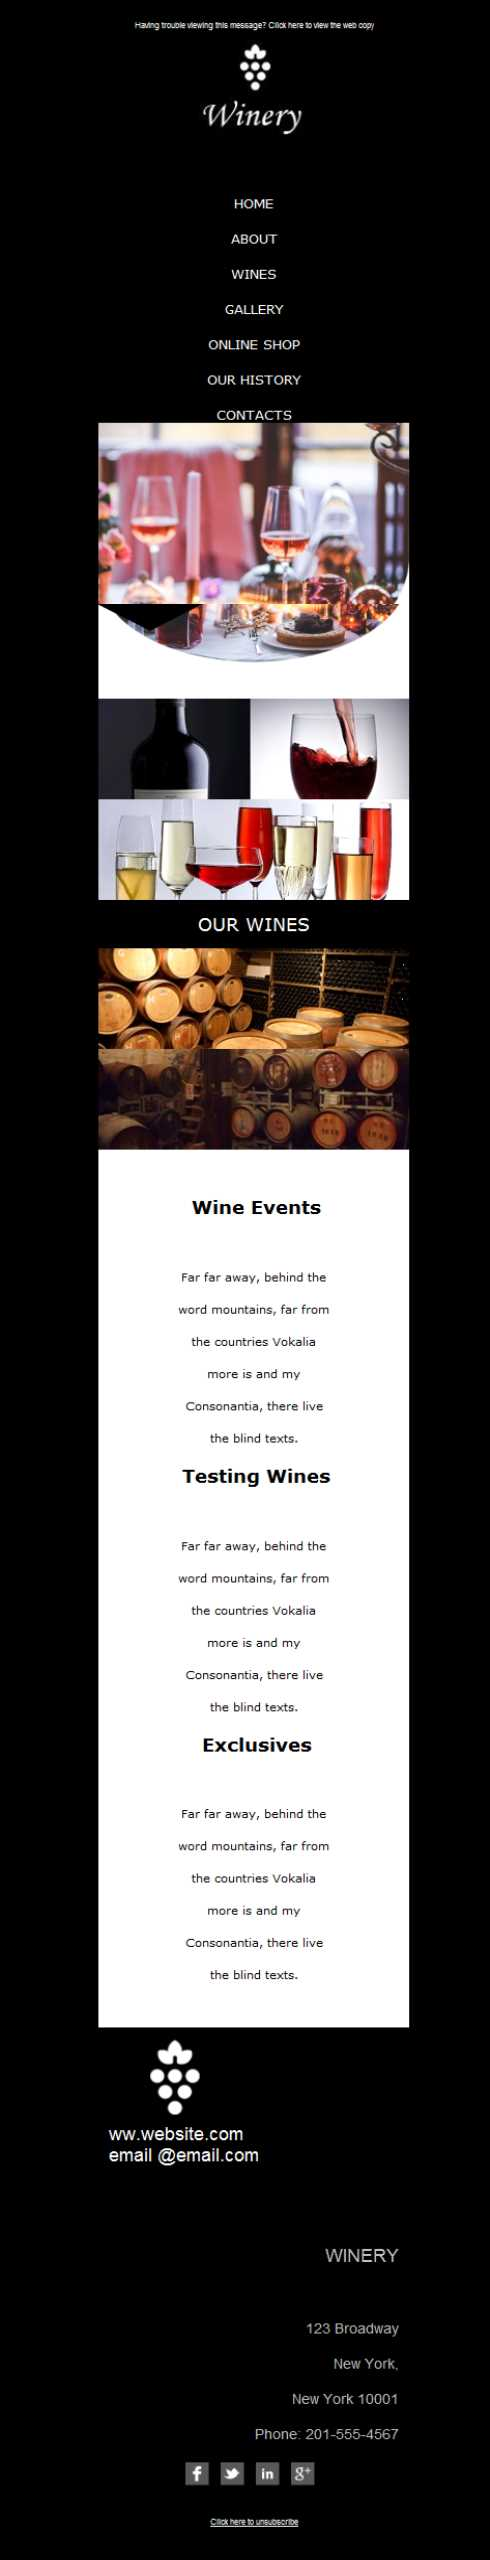 Templates Emailing Winery Rose Sarbacane